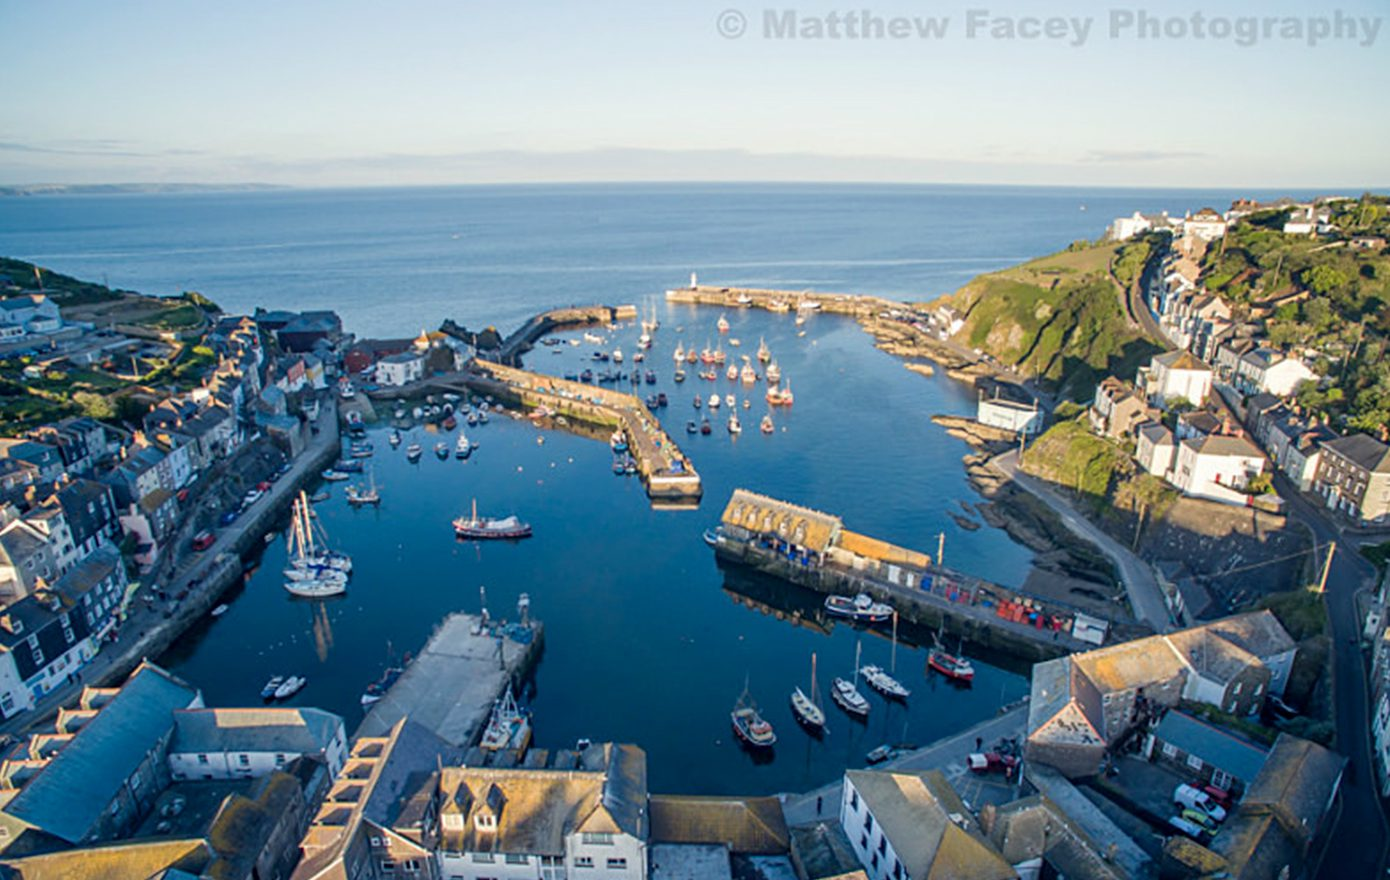 Mevagissey Feast Week 2019